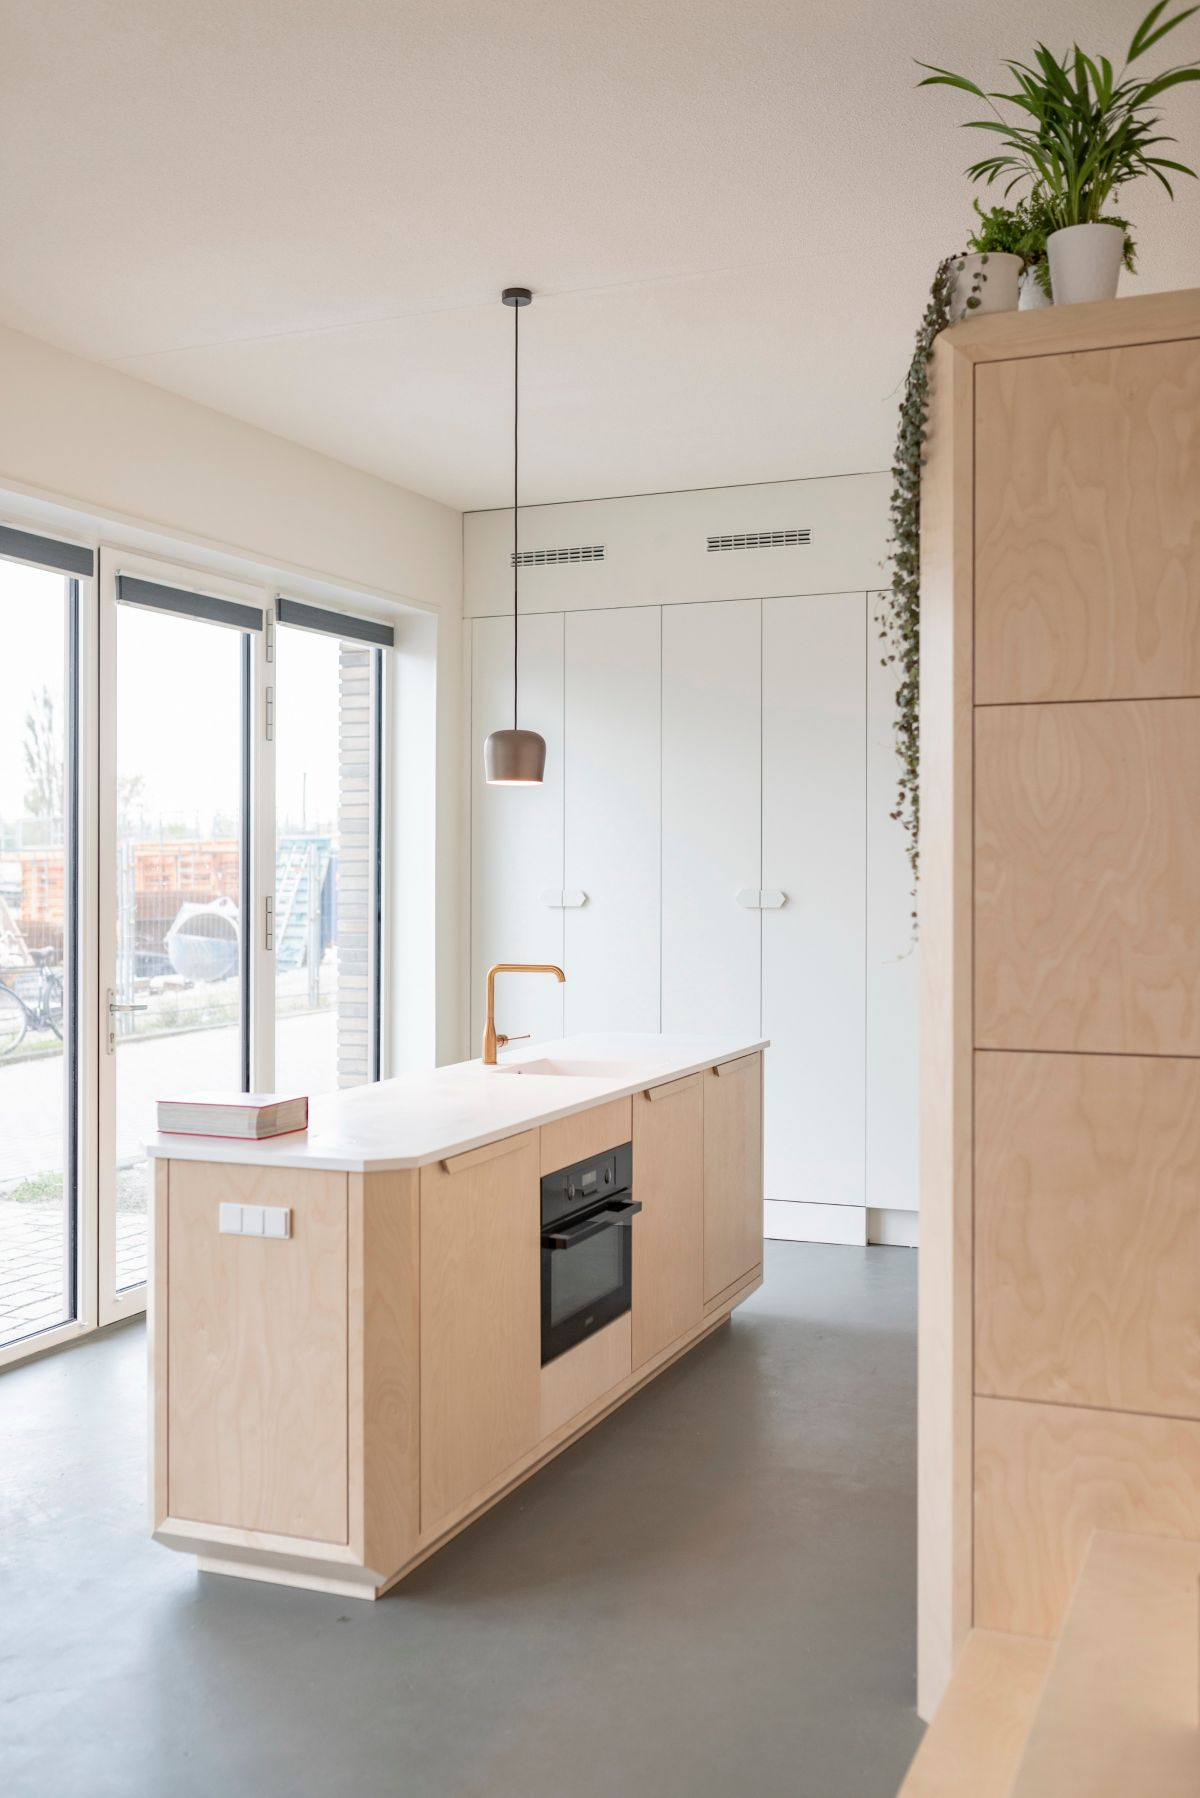 The large windows bring in lots of natural light and expose the common areas to the view